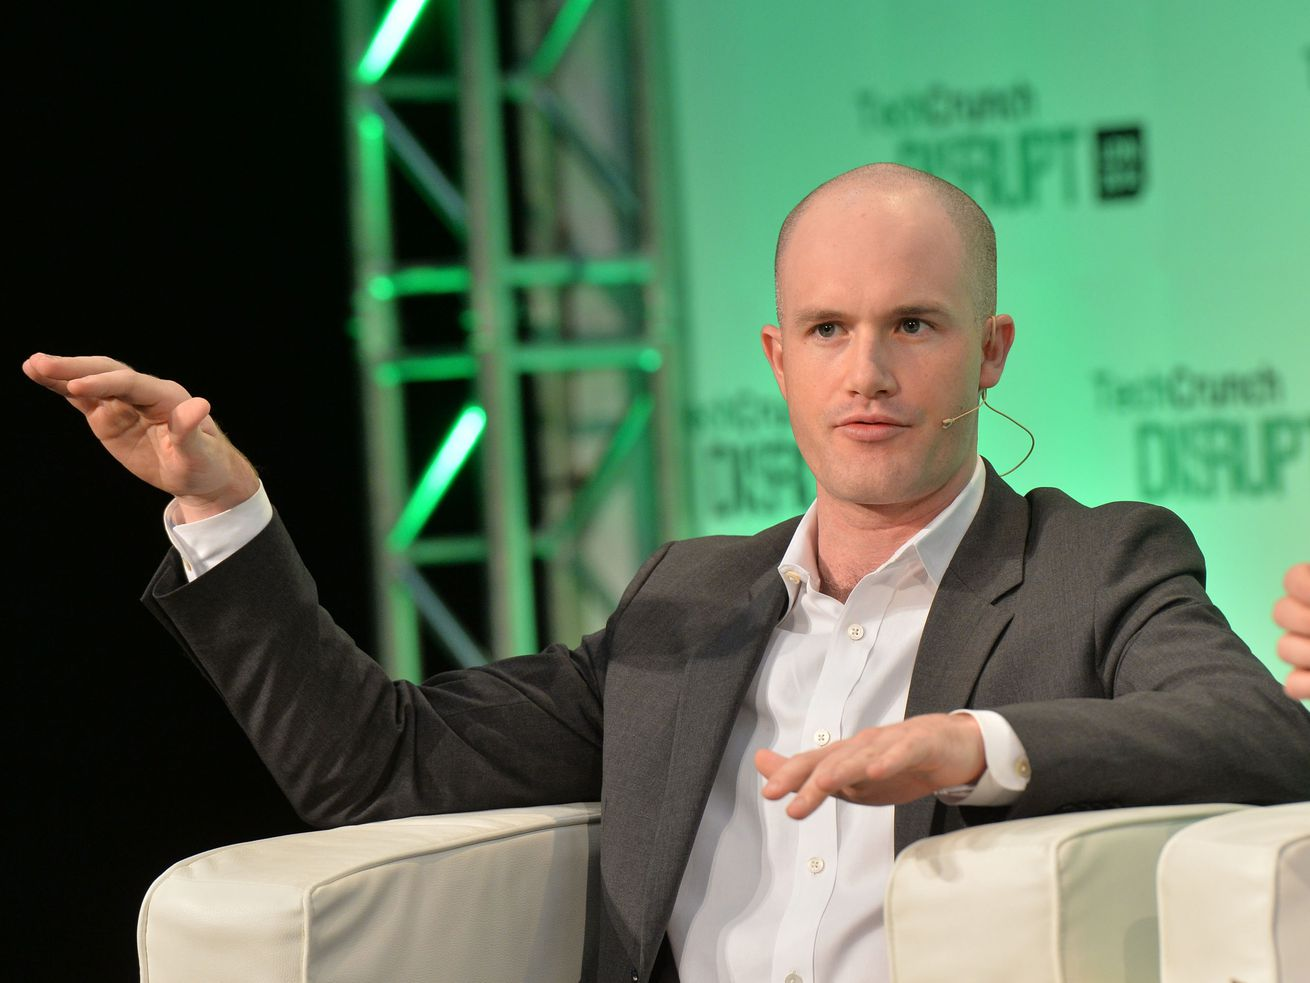 Coinbase, the startup at the core of the crypto craze, is now considered an $8 billion company